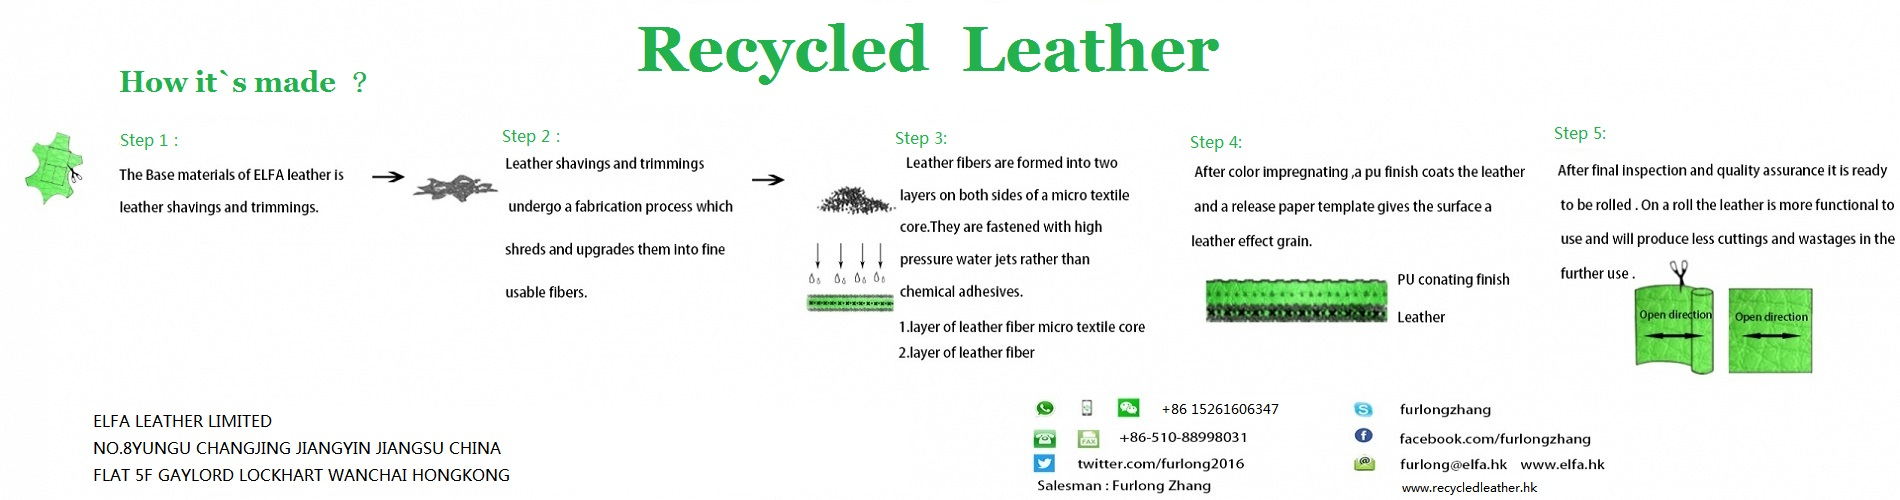 recycled leather--innovated material to improving the sustainability